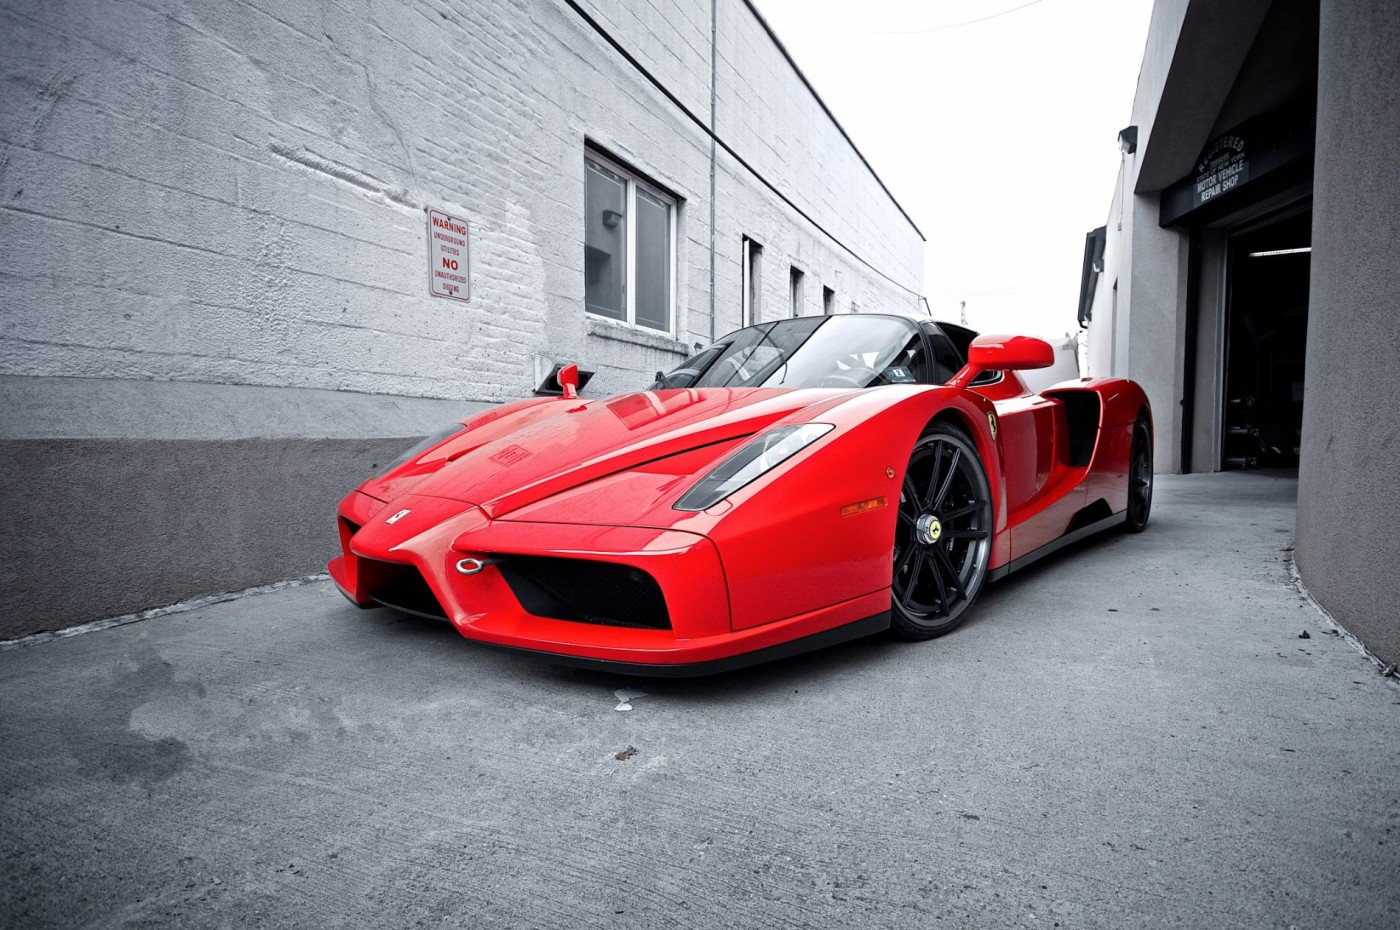 ferrari-enzo-red-side-street